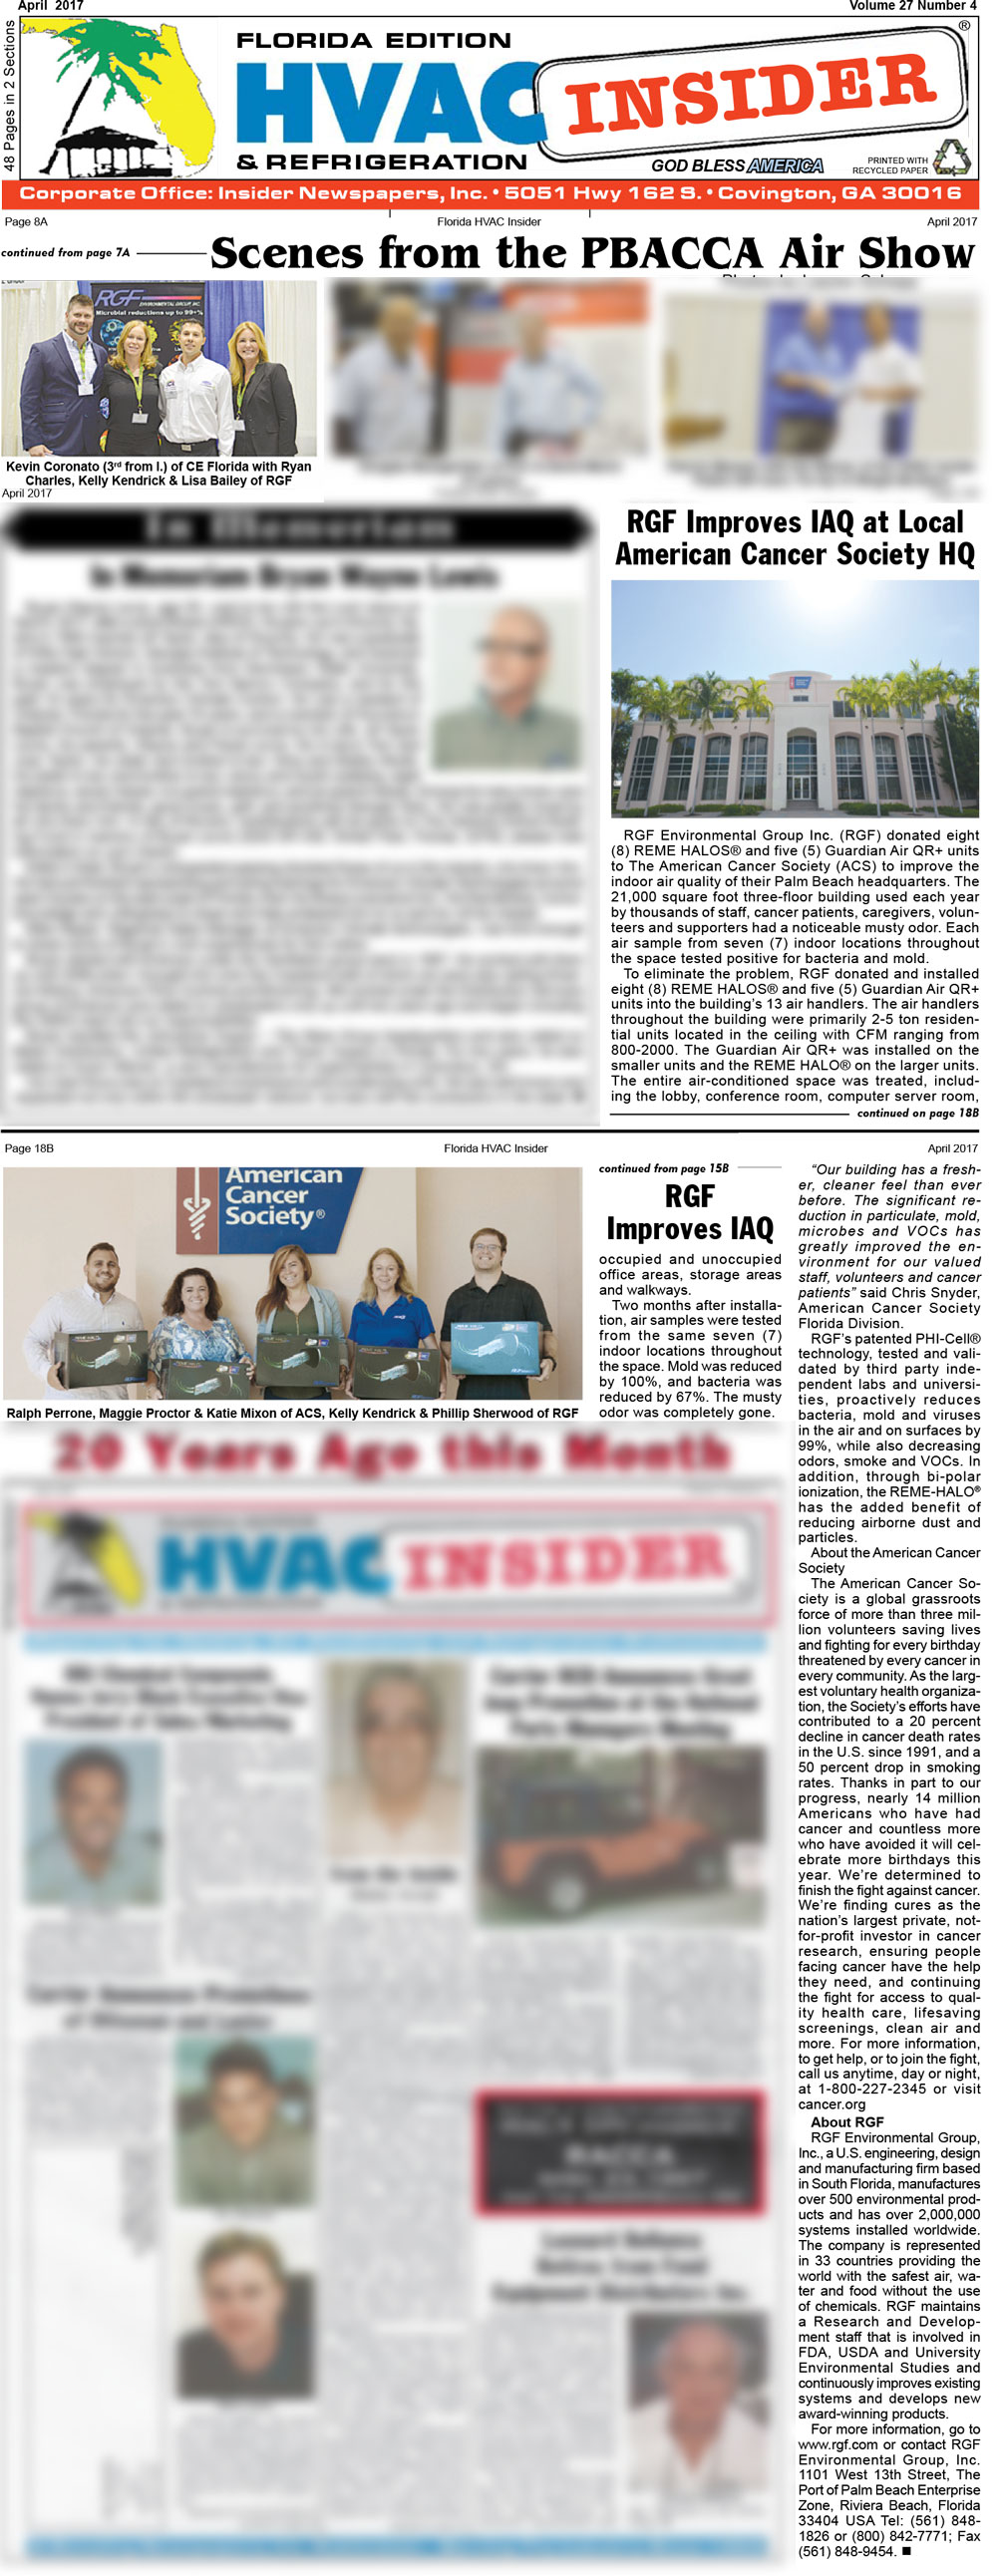 HVAC INSIDER, April 2017 – American Cancer Society